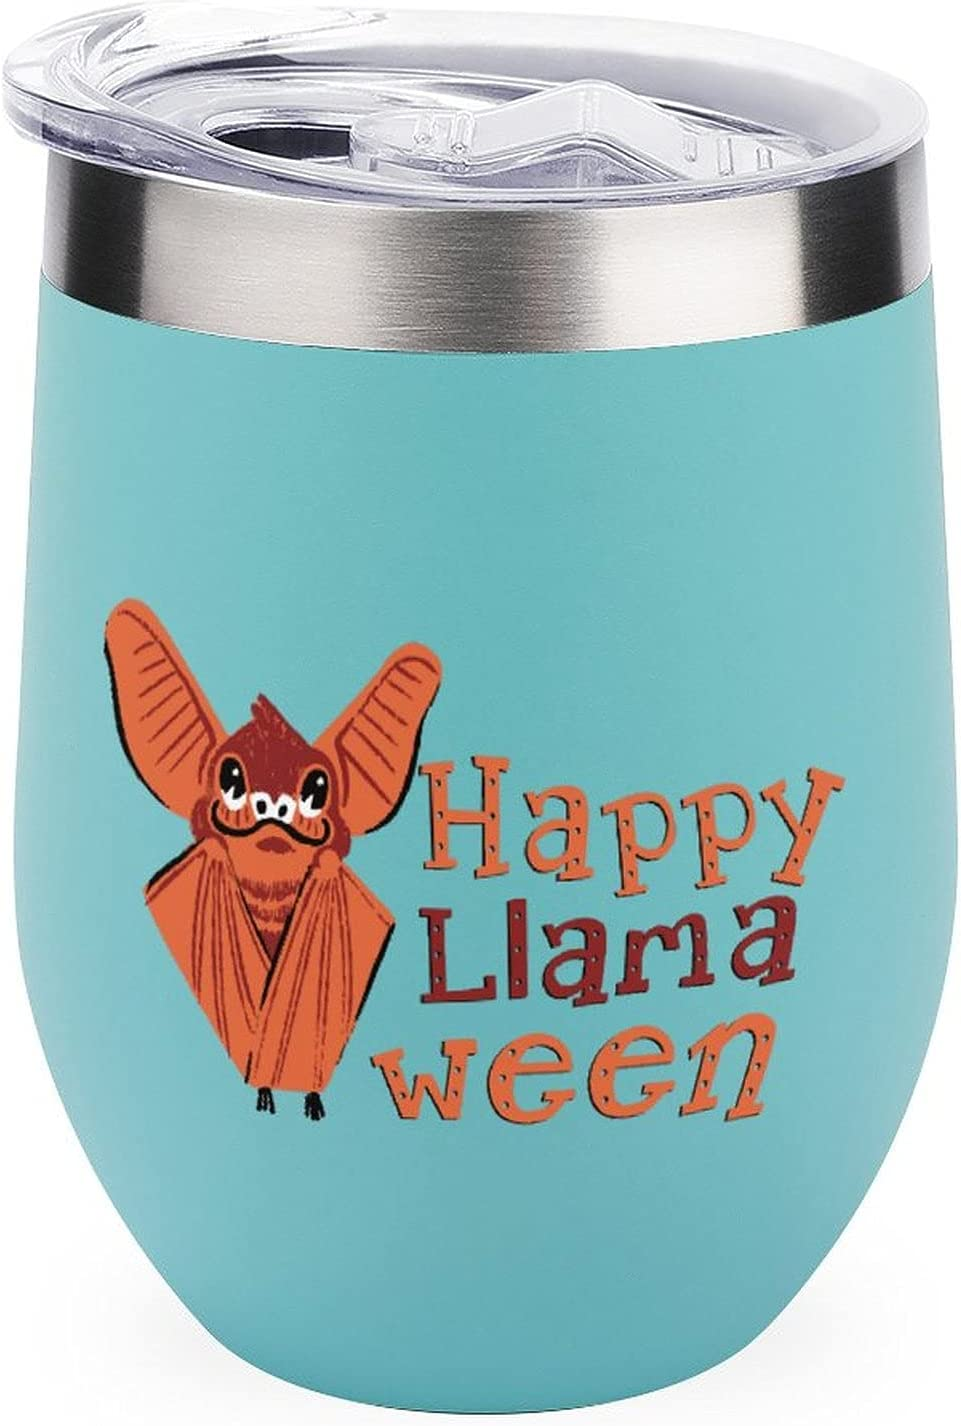 Anyuwerw Insulated Wine Tumbler with Happy Save Max 54% OFF money Hallowe Llamaween Lid